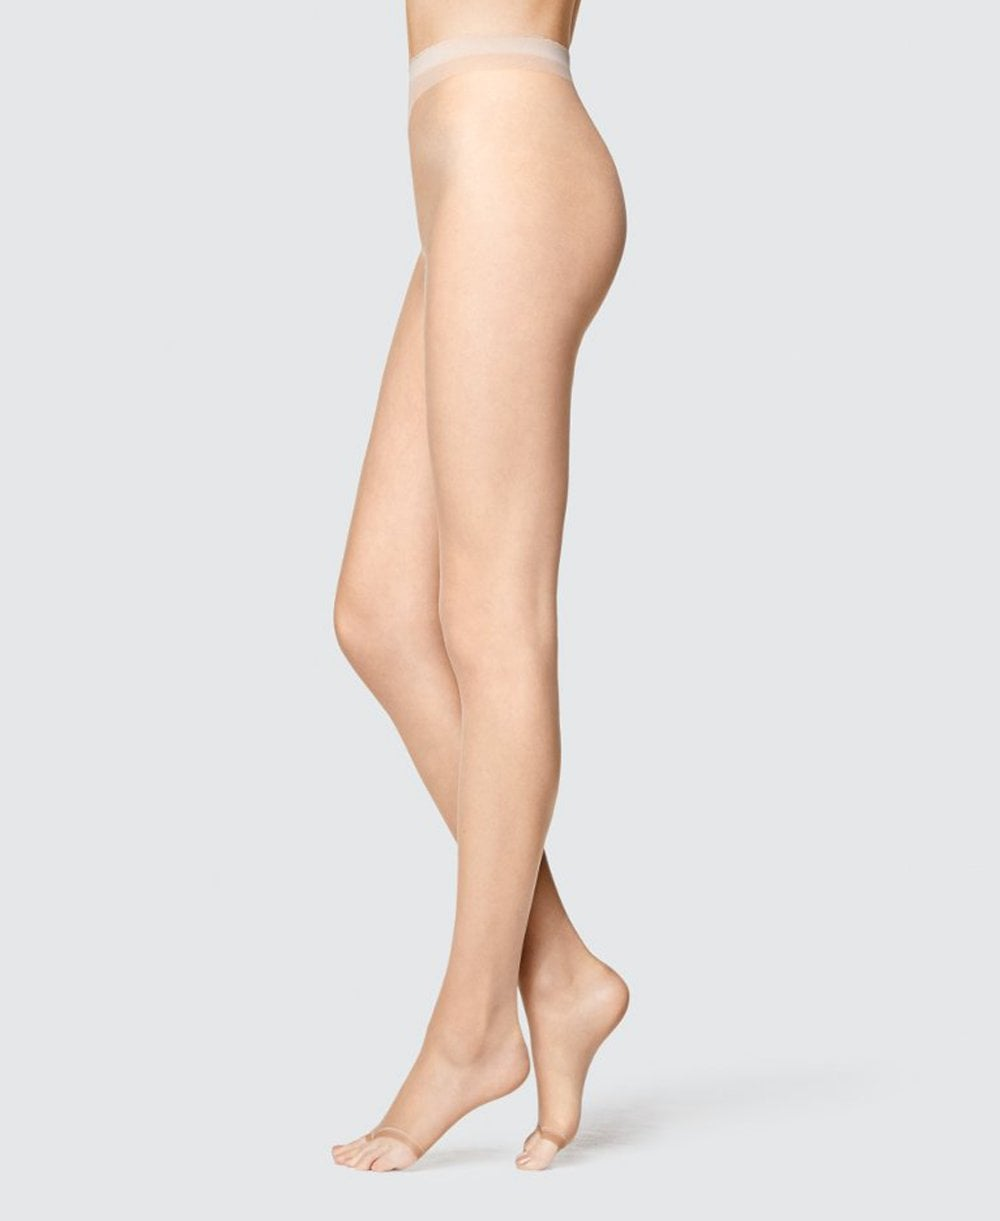 080b3473f Fogal All Nude 10 Denier Toeless Tights - Tights from luxury-legs.com UK